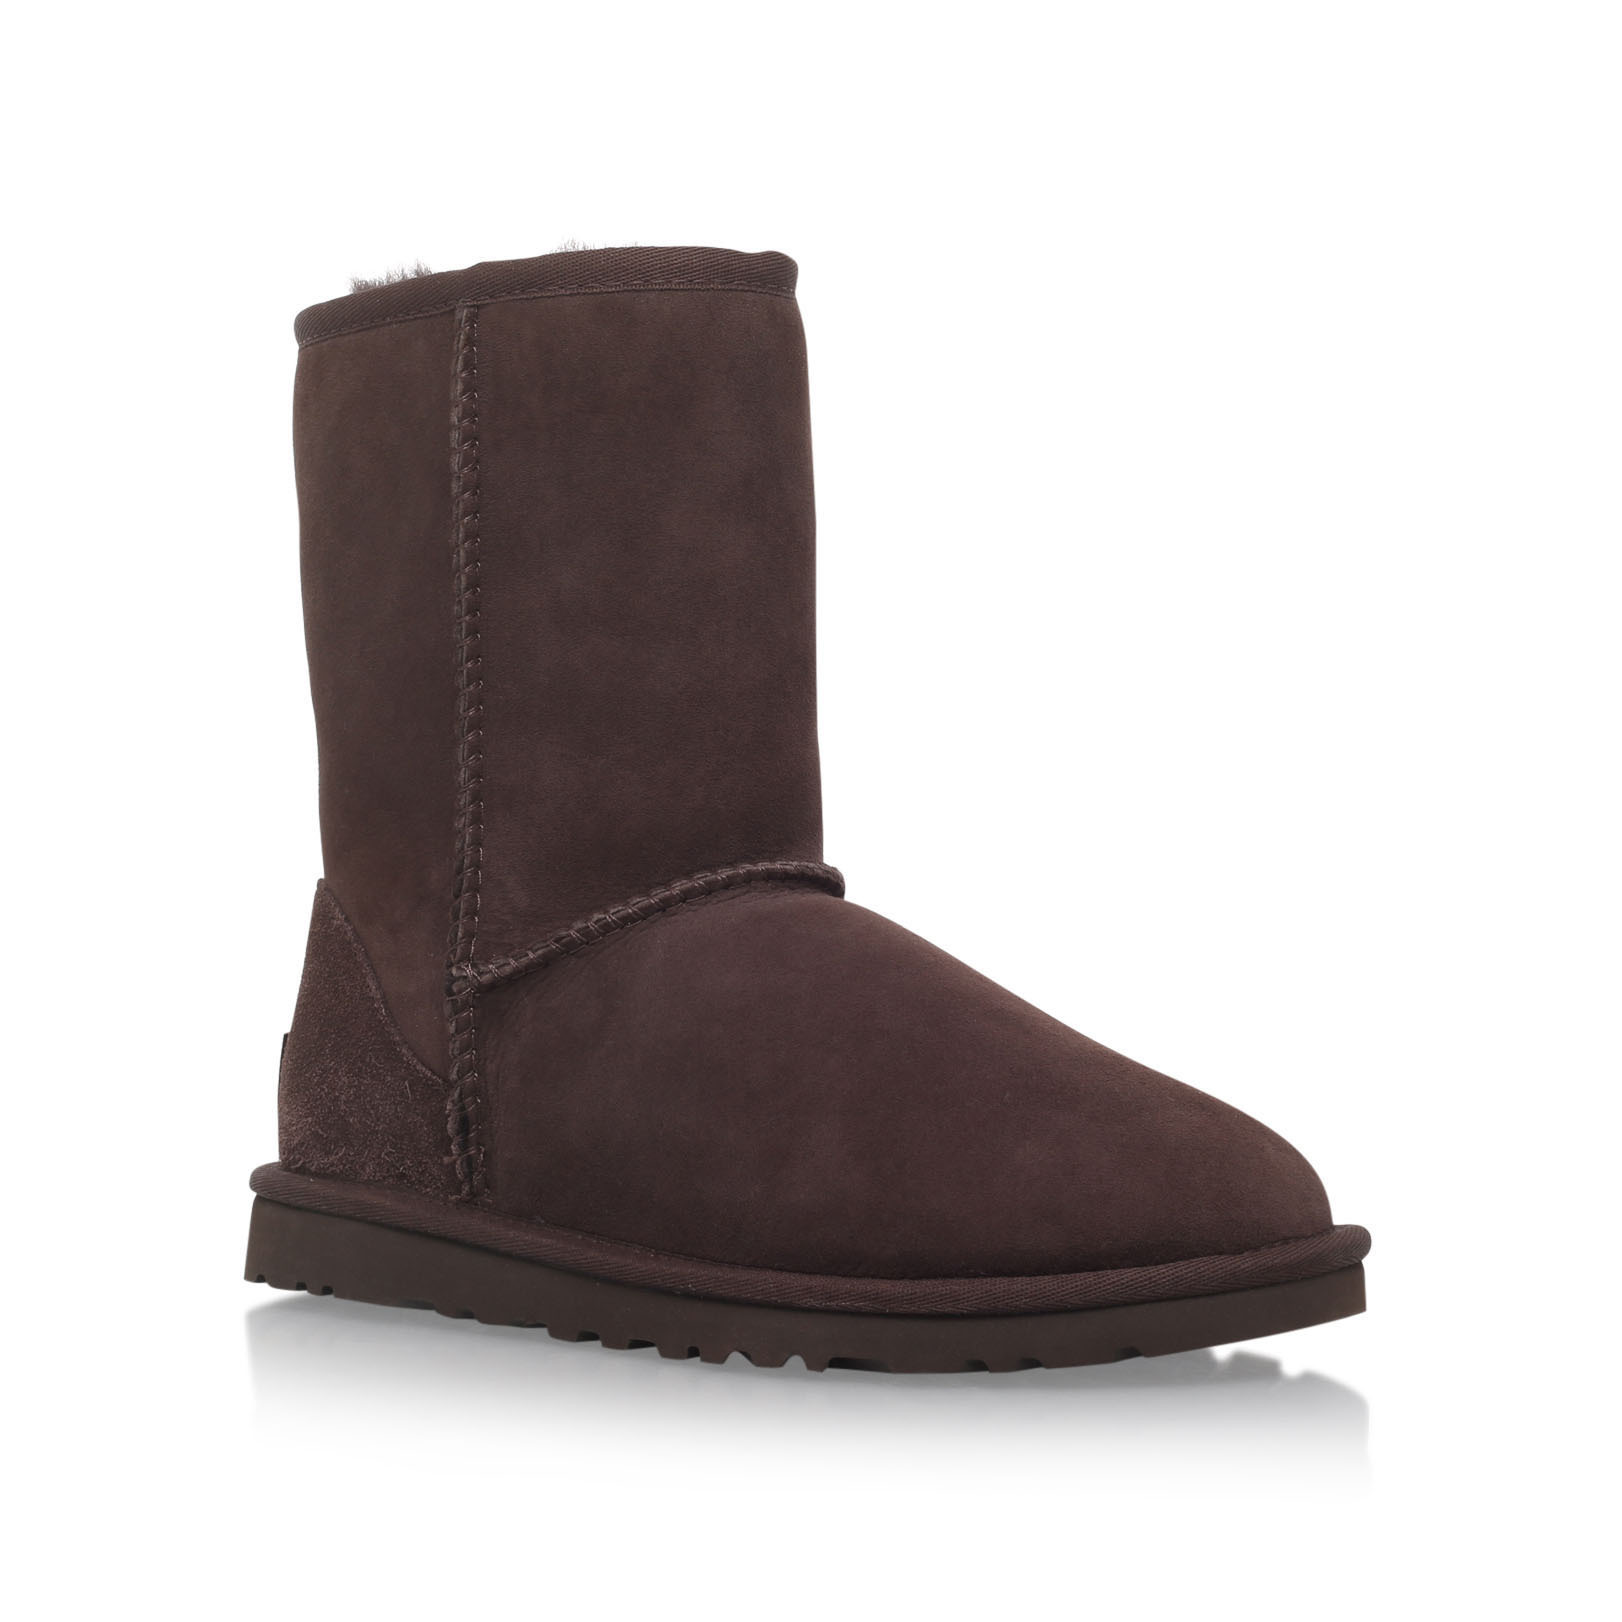 d23523833f2 Womens Ugg Australia Chocolate Brown Classic Short Boots - cheap ...